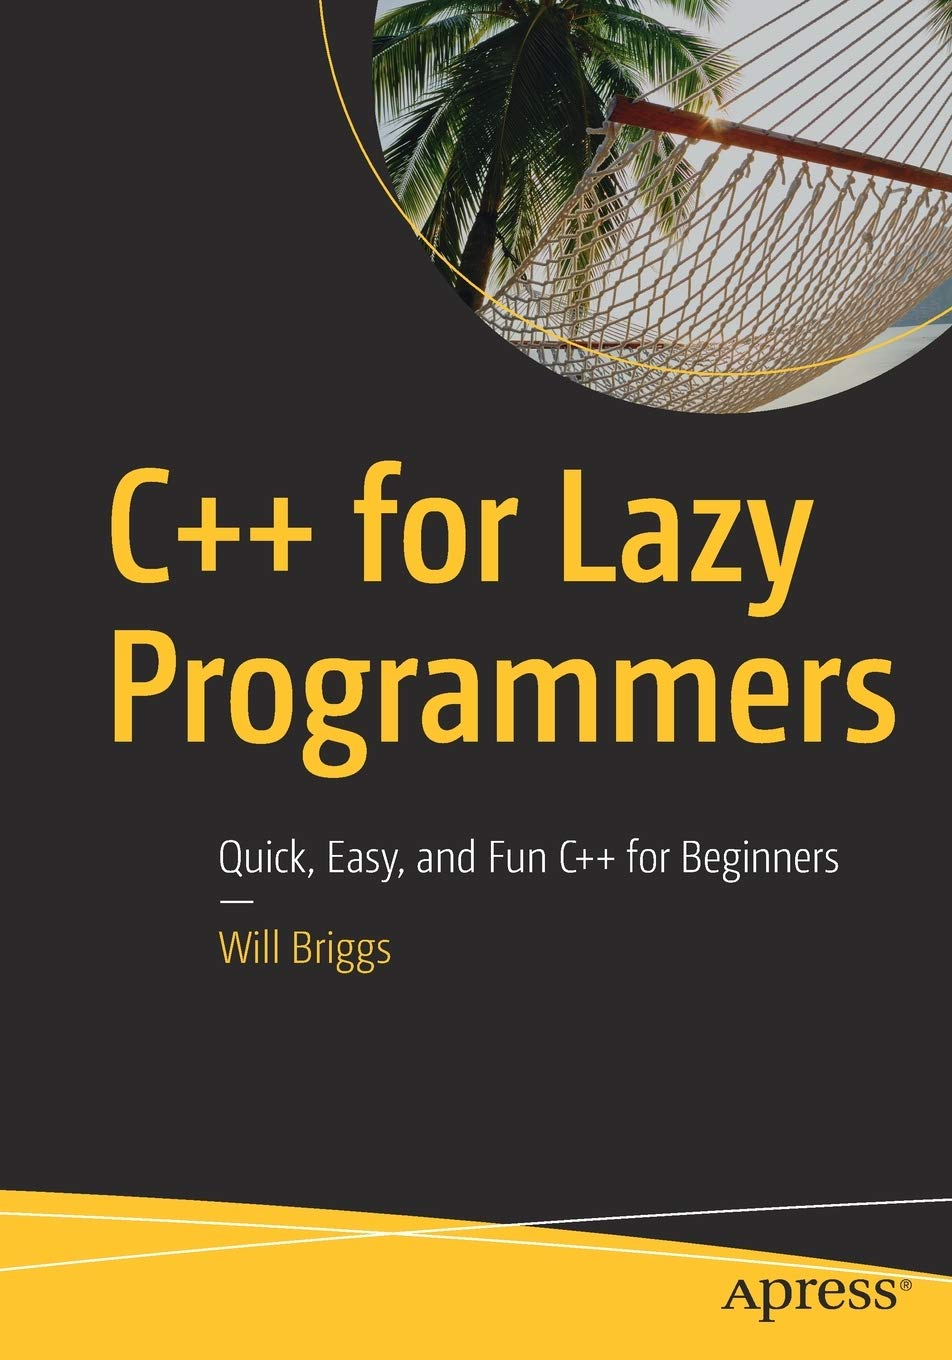 C++ for Lazy Programmers: Quick, Easy, and Fun